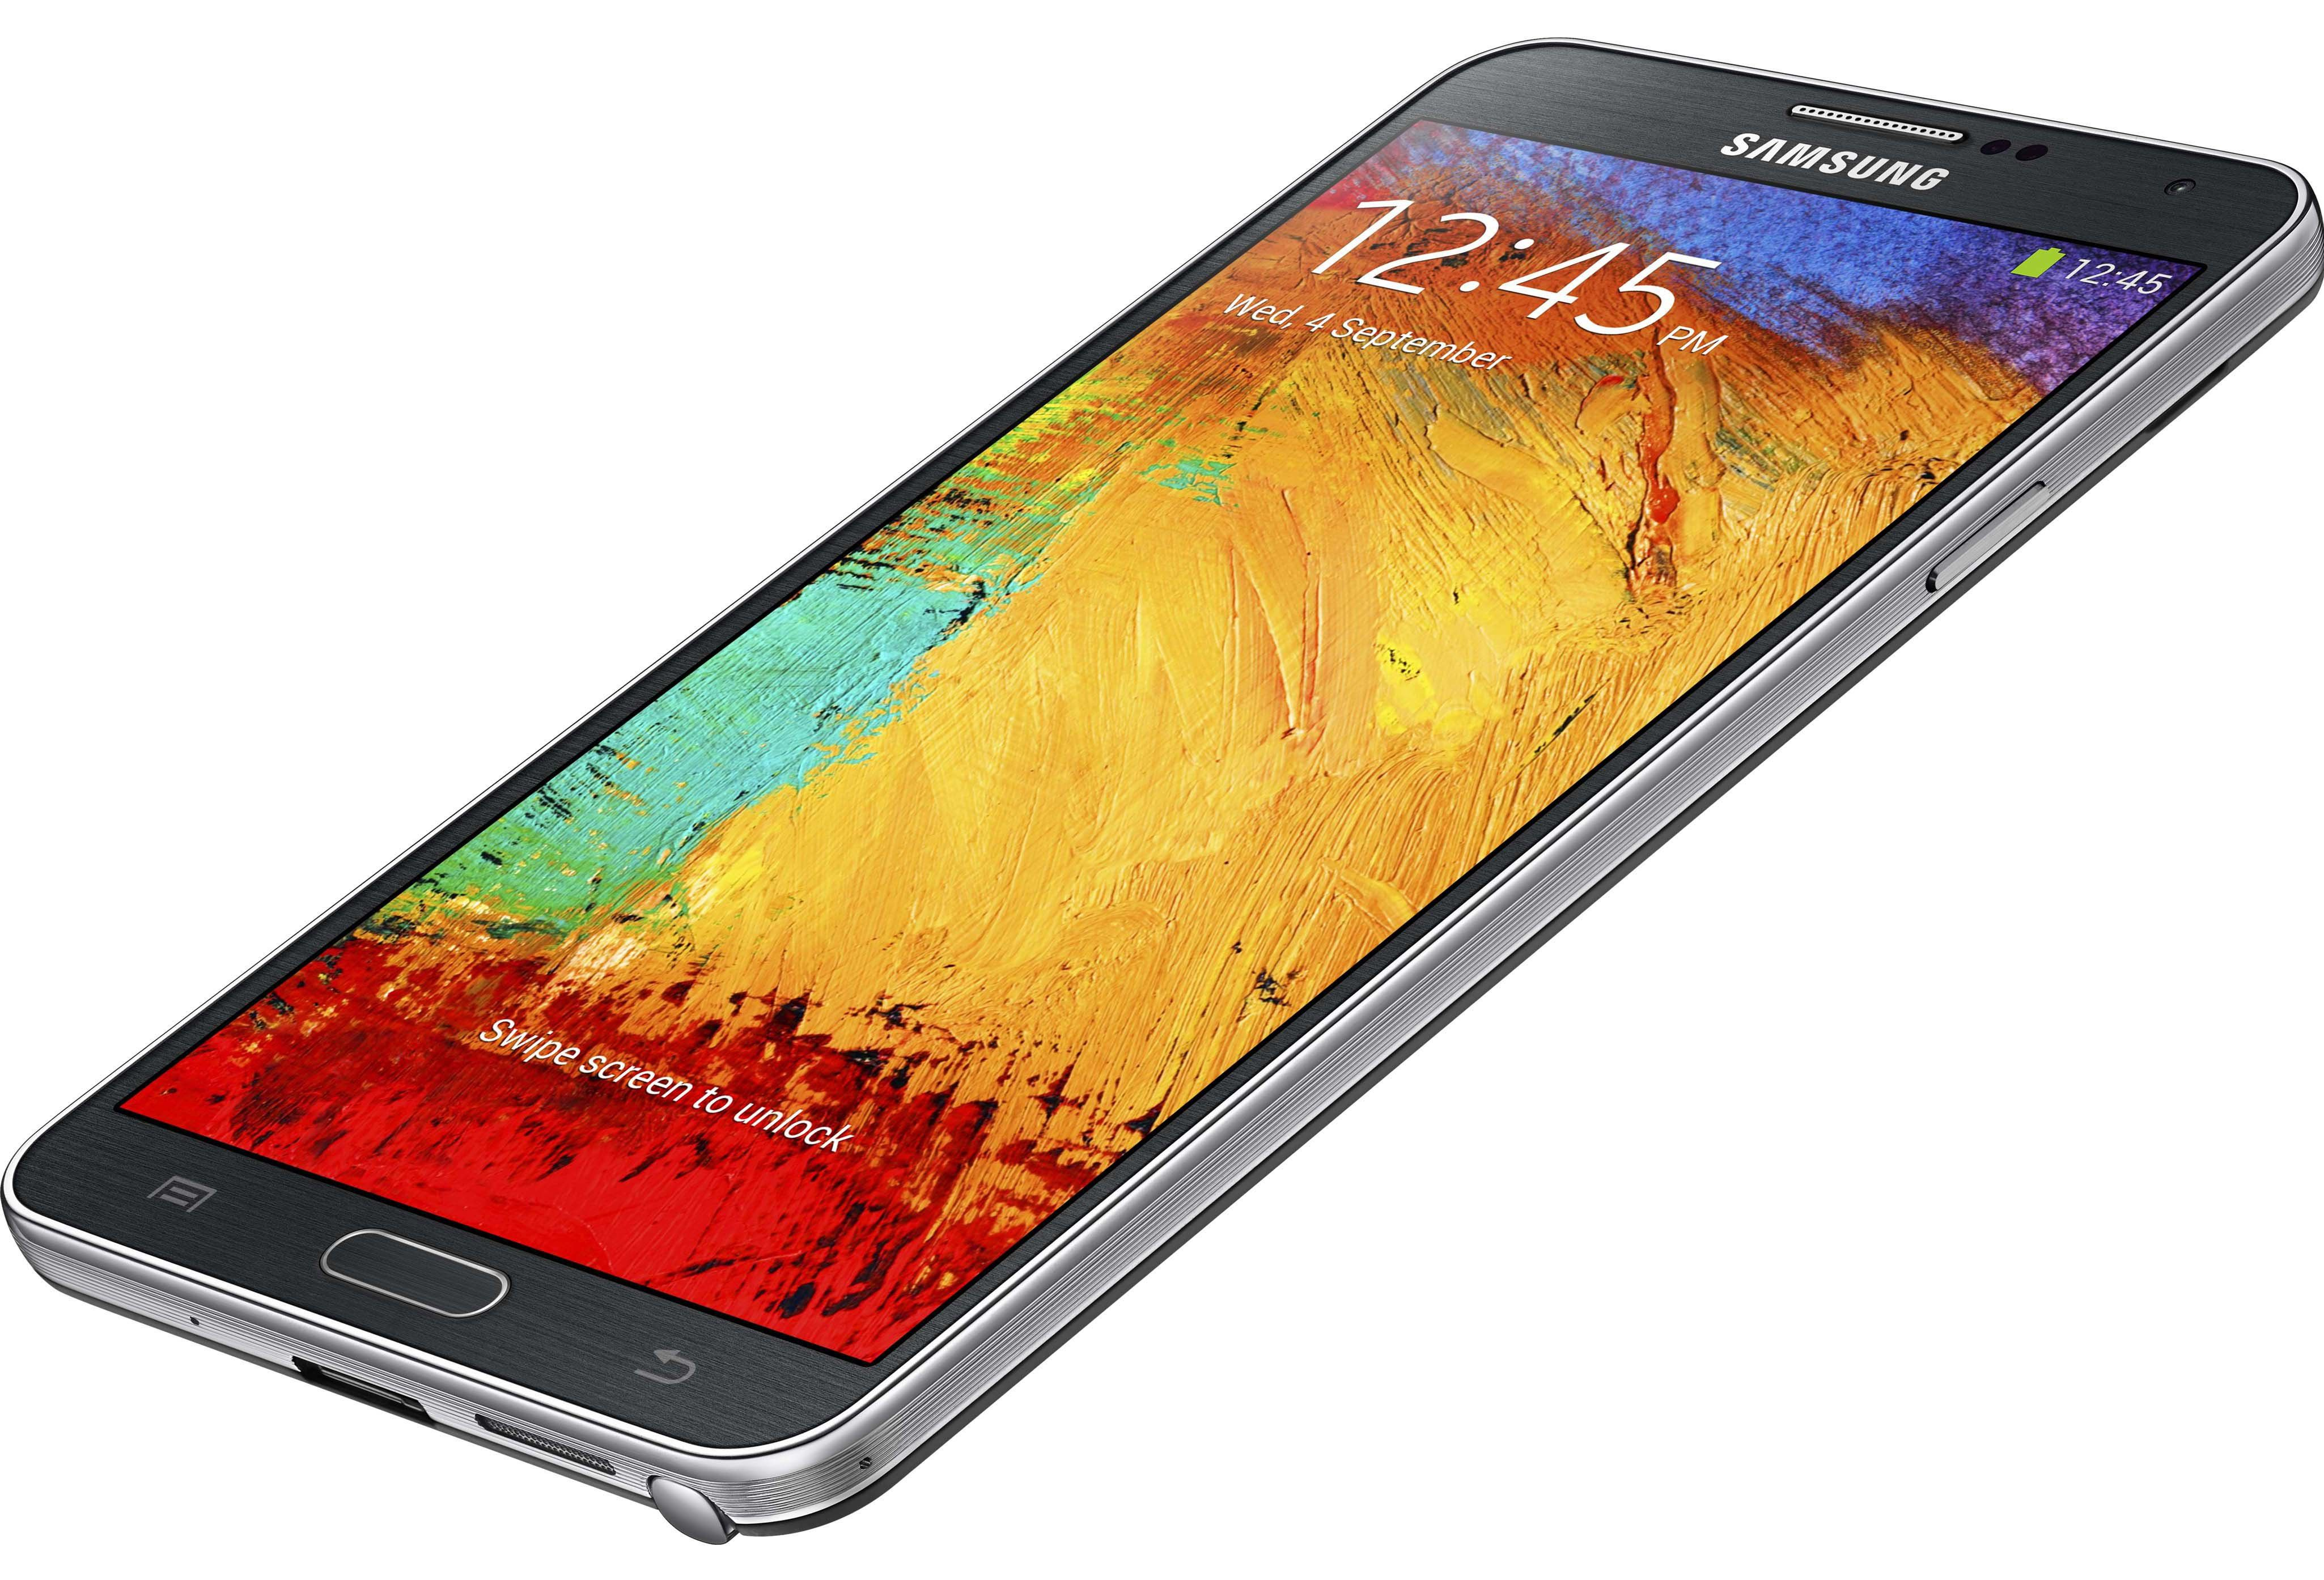 Stock Firmware on Samsung GALAXY Note3 Neo SM-N7502 In this guide